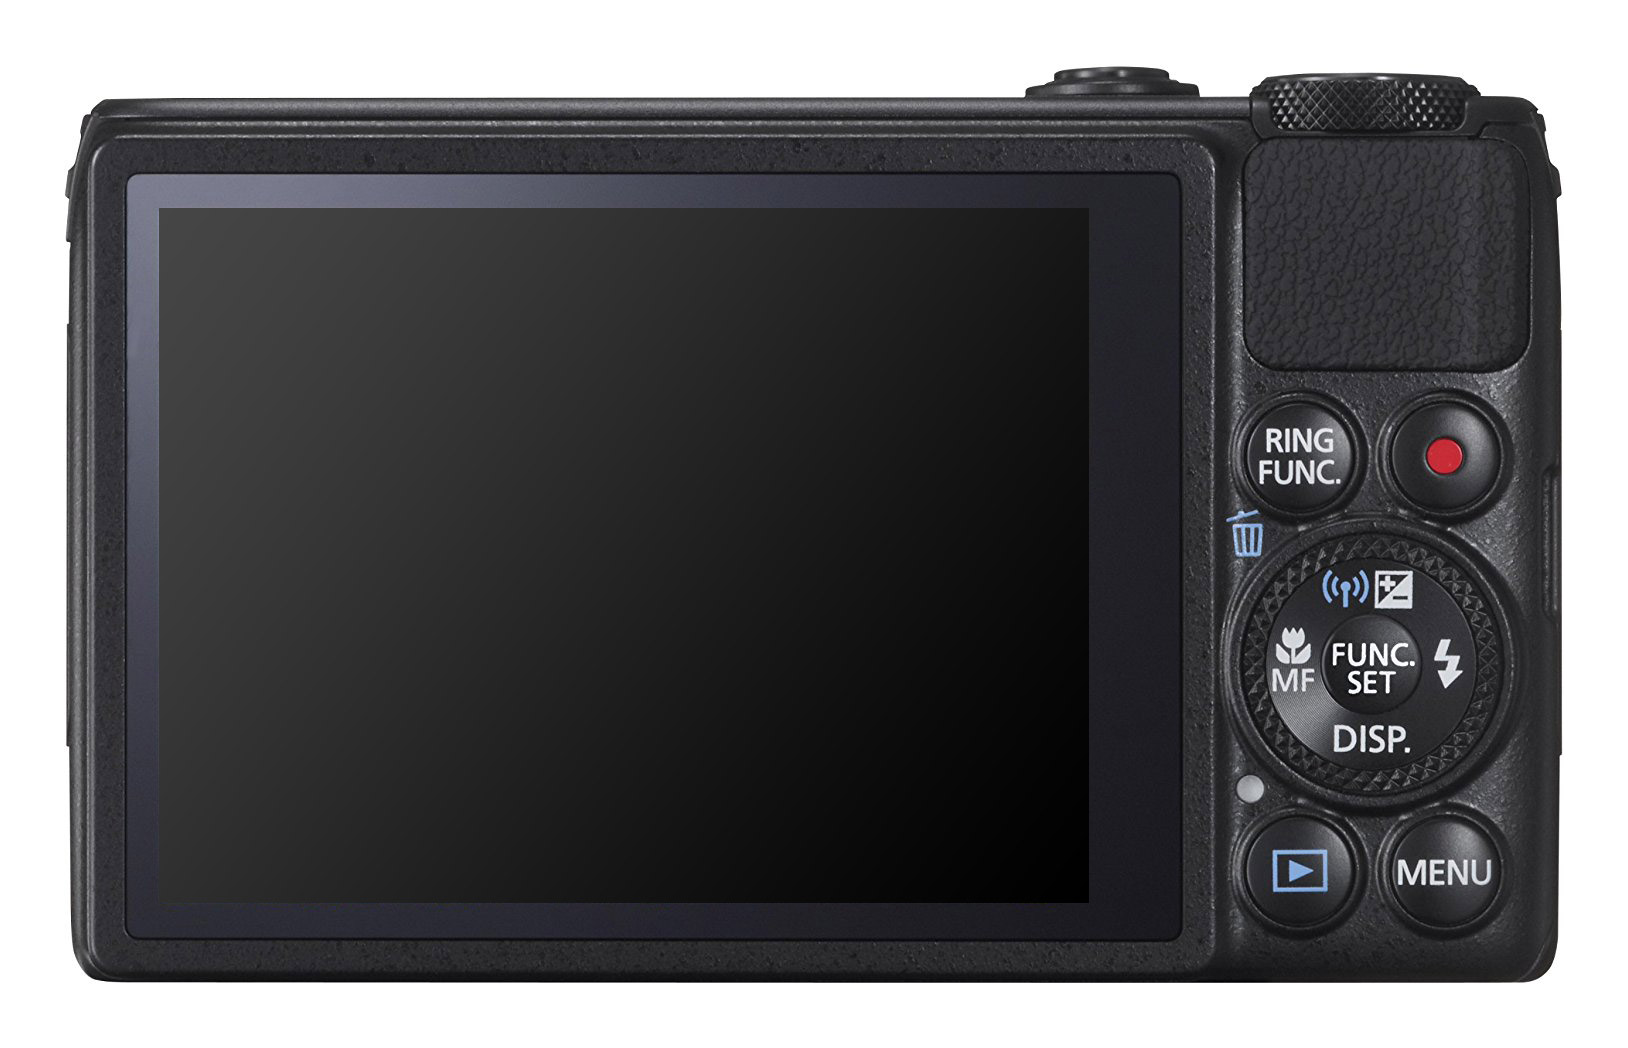 PowerShot S120 display and touch screen